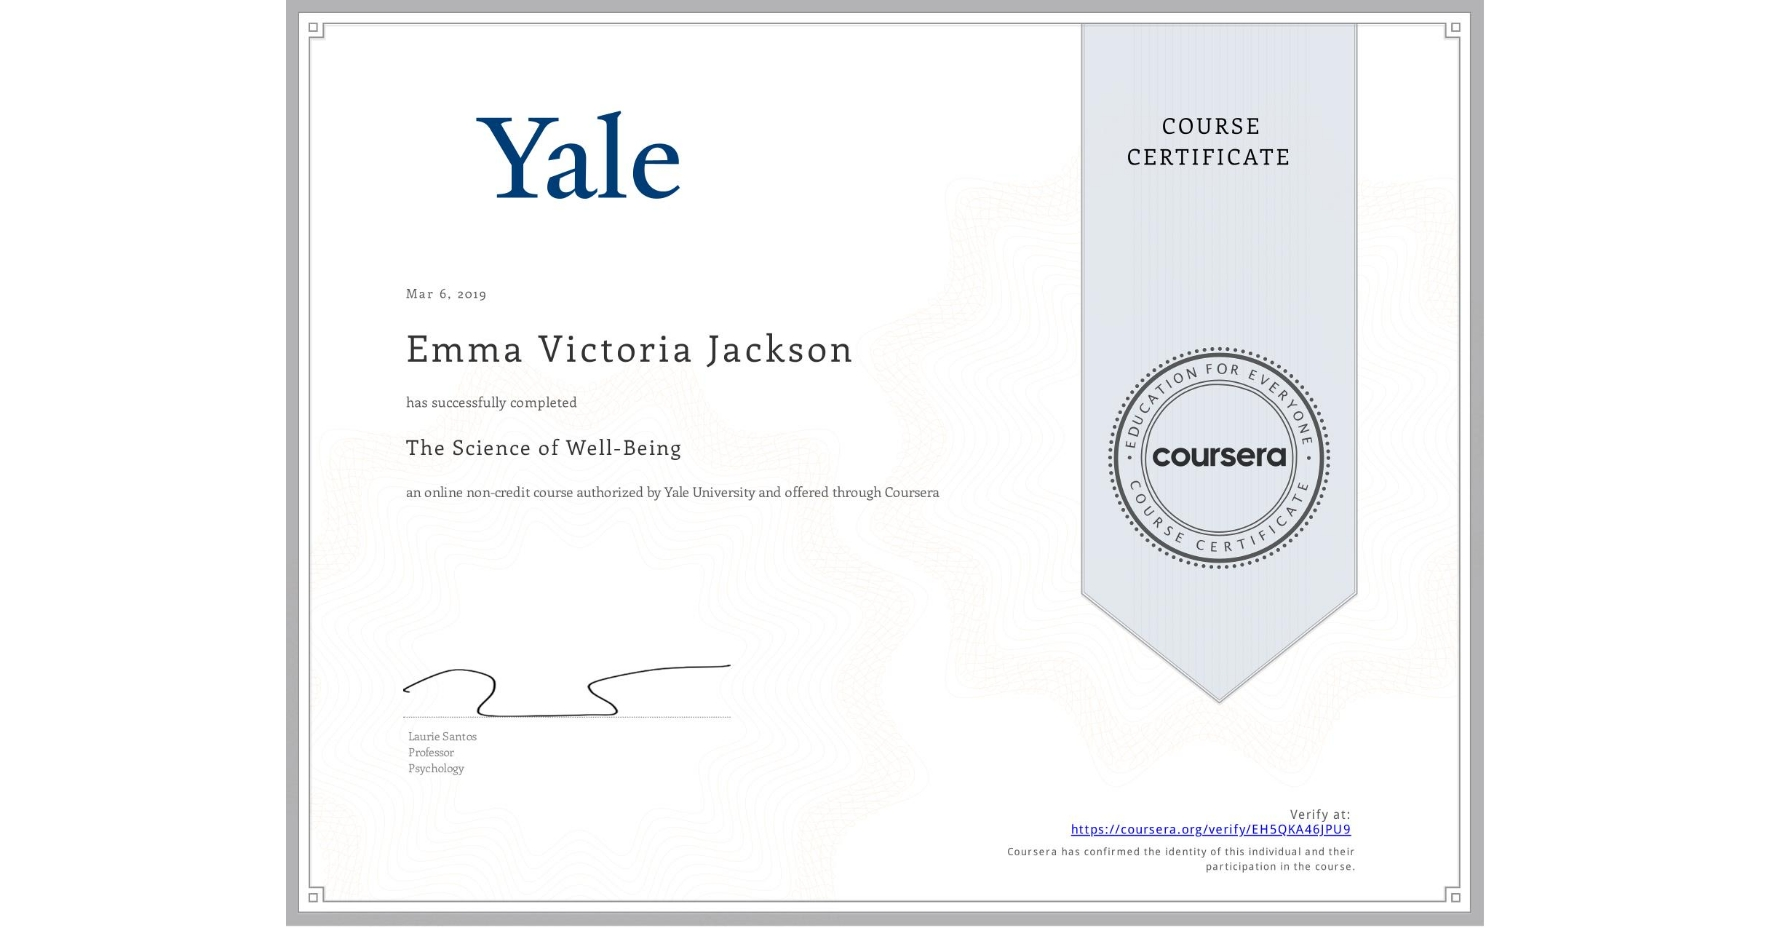 View certificate for Emma Victoria Jackson, The Science of Well-Being, an online non-credit course authorized by Yale University and offered through Coursera